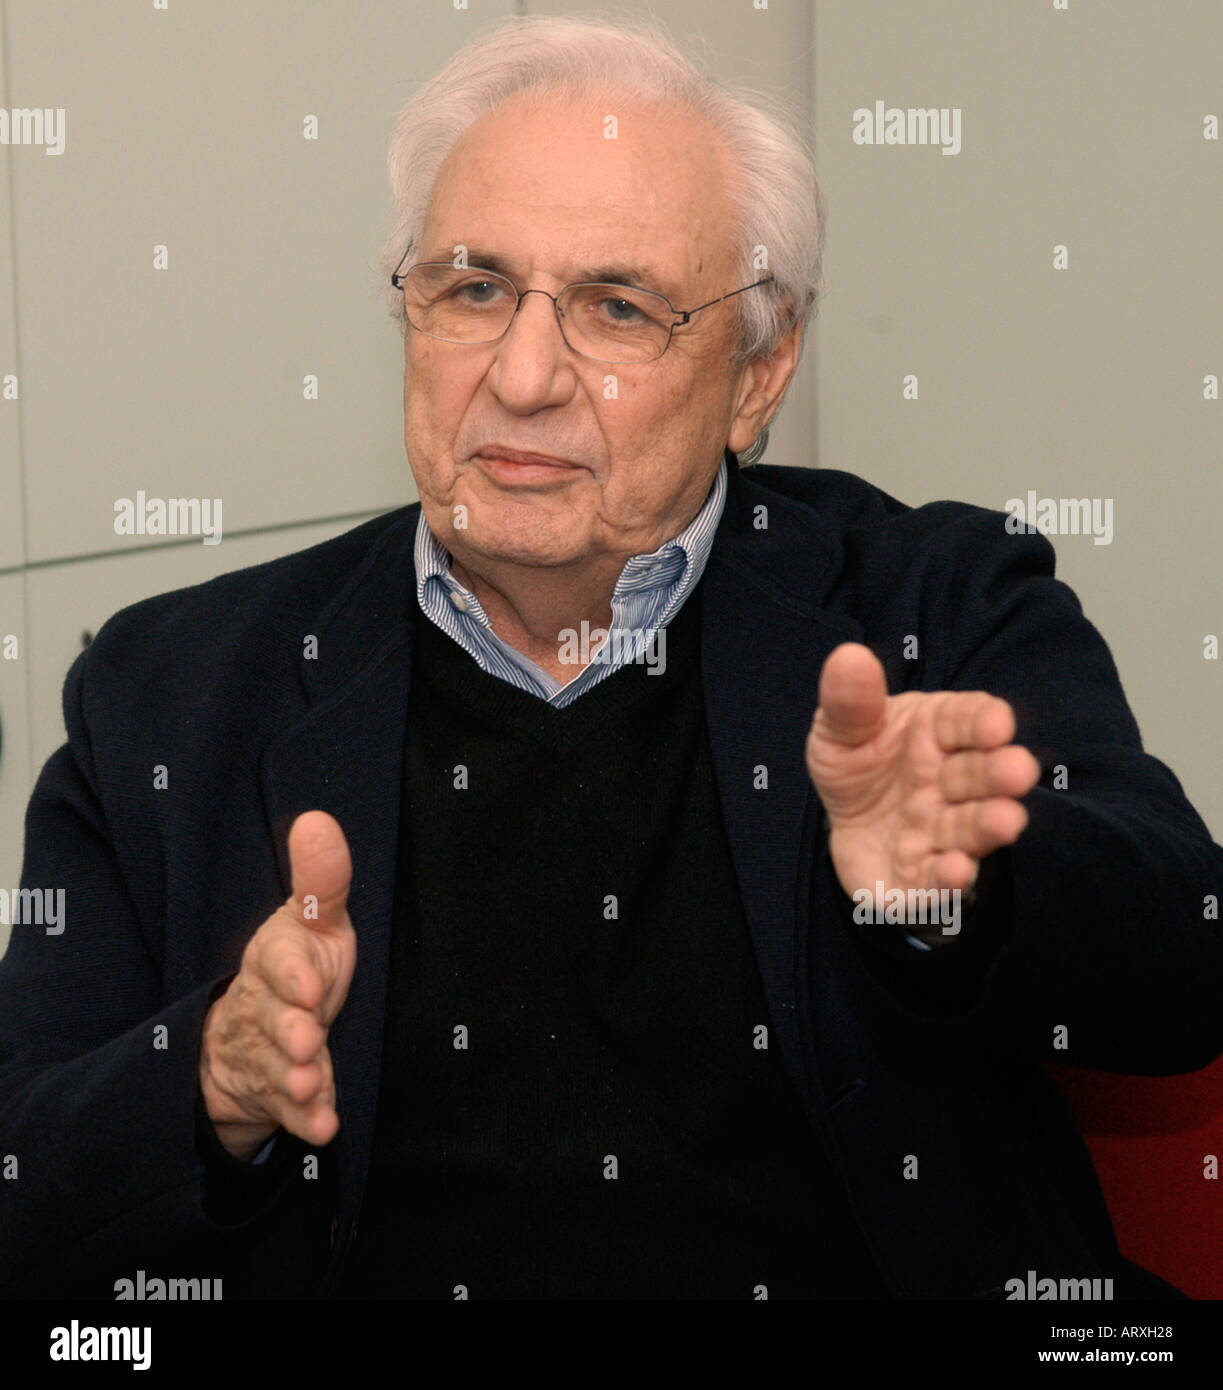 Close up portrait of Frank Gehry an architect in the midst of a discussion in New York - Stock Image